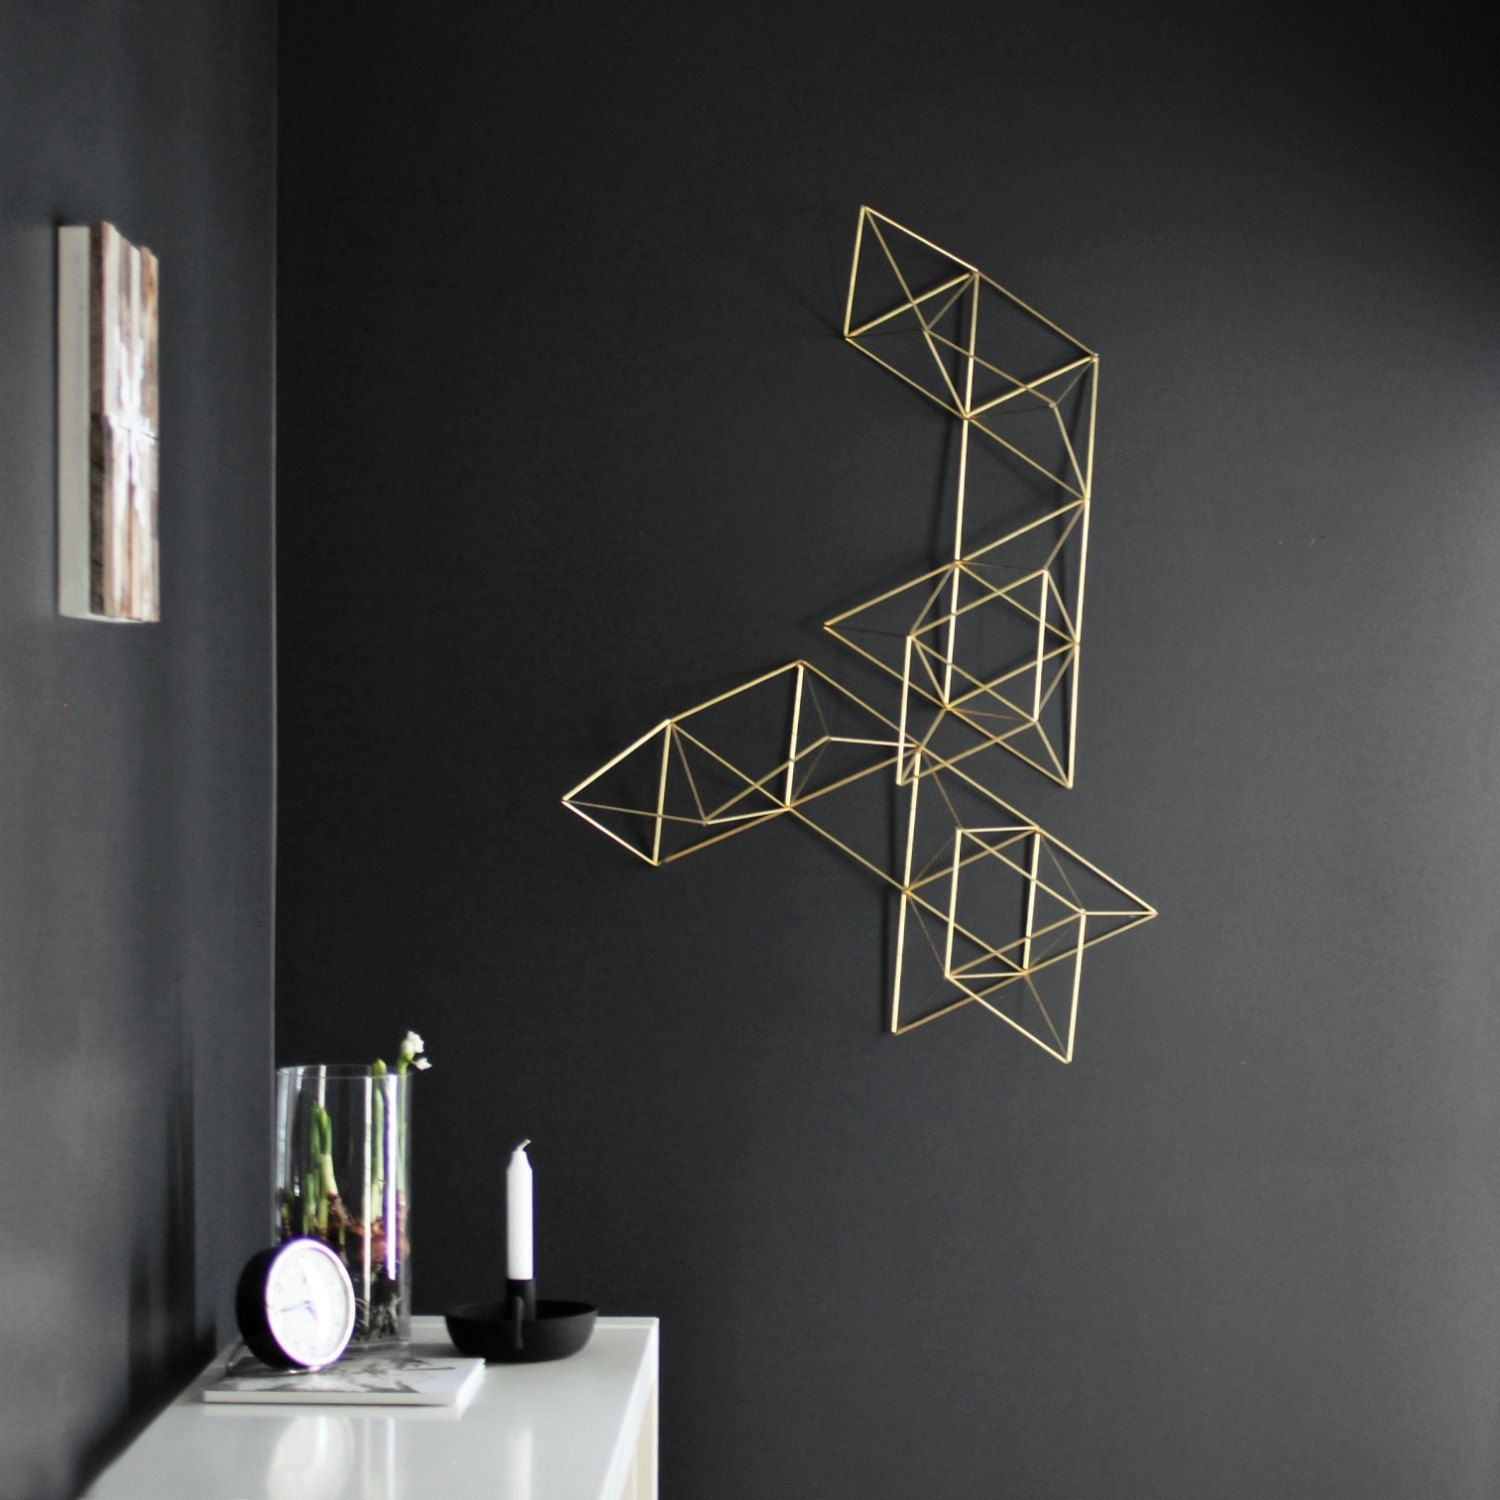 Lux – Large Abstract Wall Sculpture – Geometric Art – Himmeli In Most Recently Released Geometric Modern Metal Abstract Wall Art (View 7 of 20)